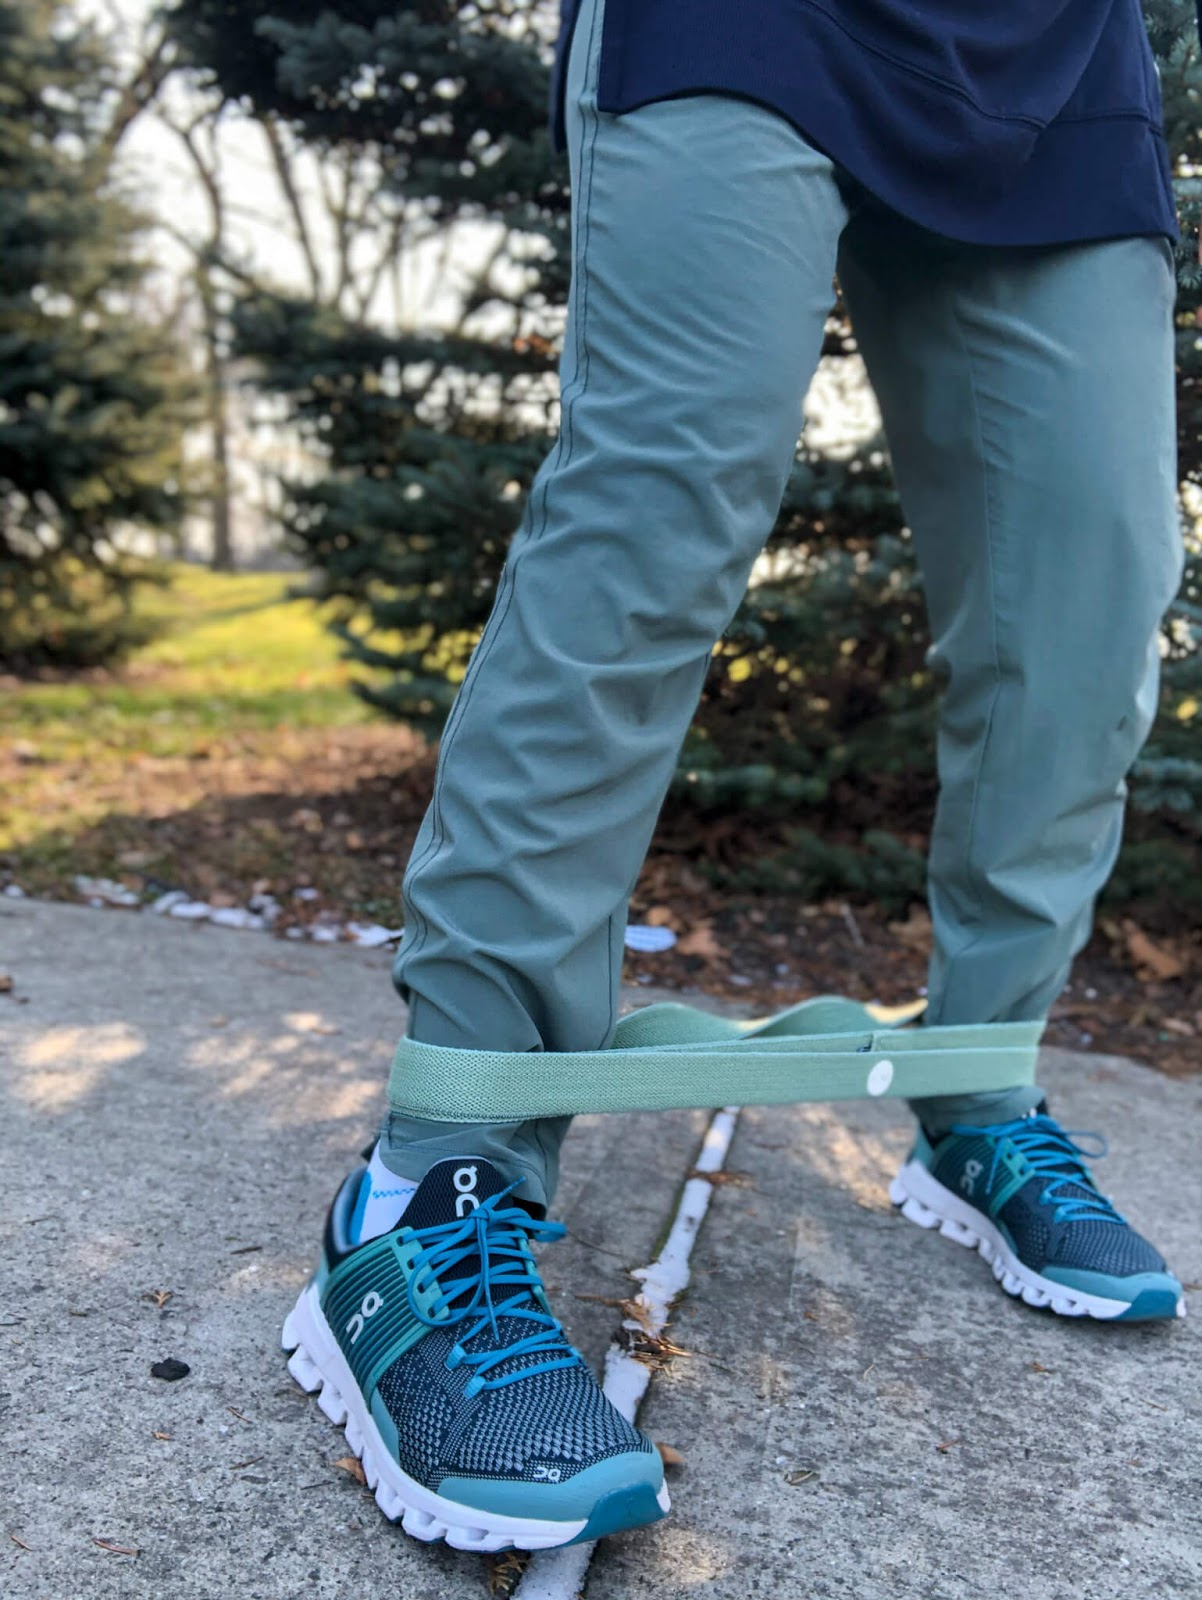 long bnd resistance band around ankles